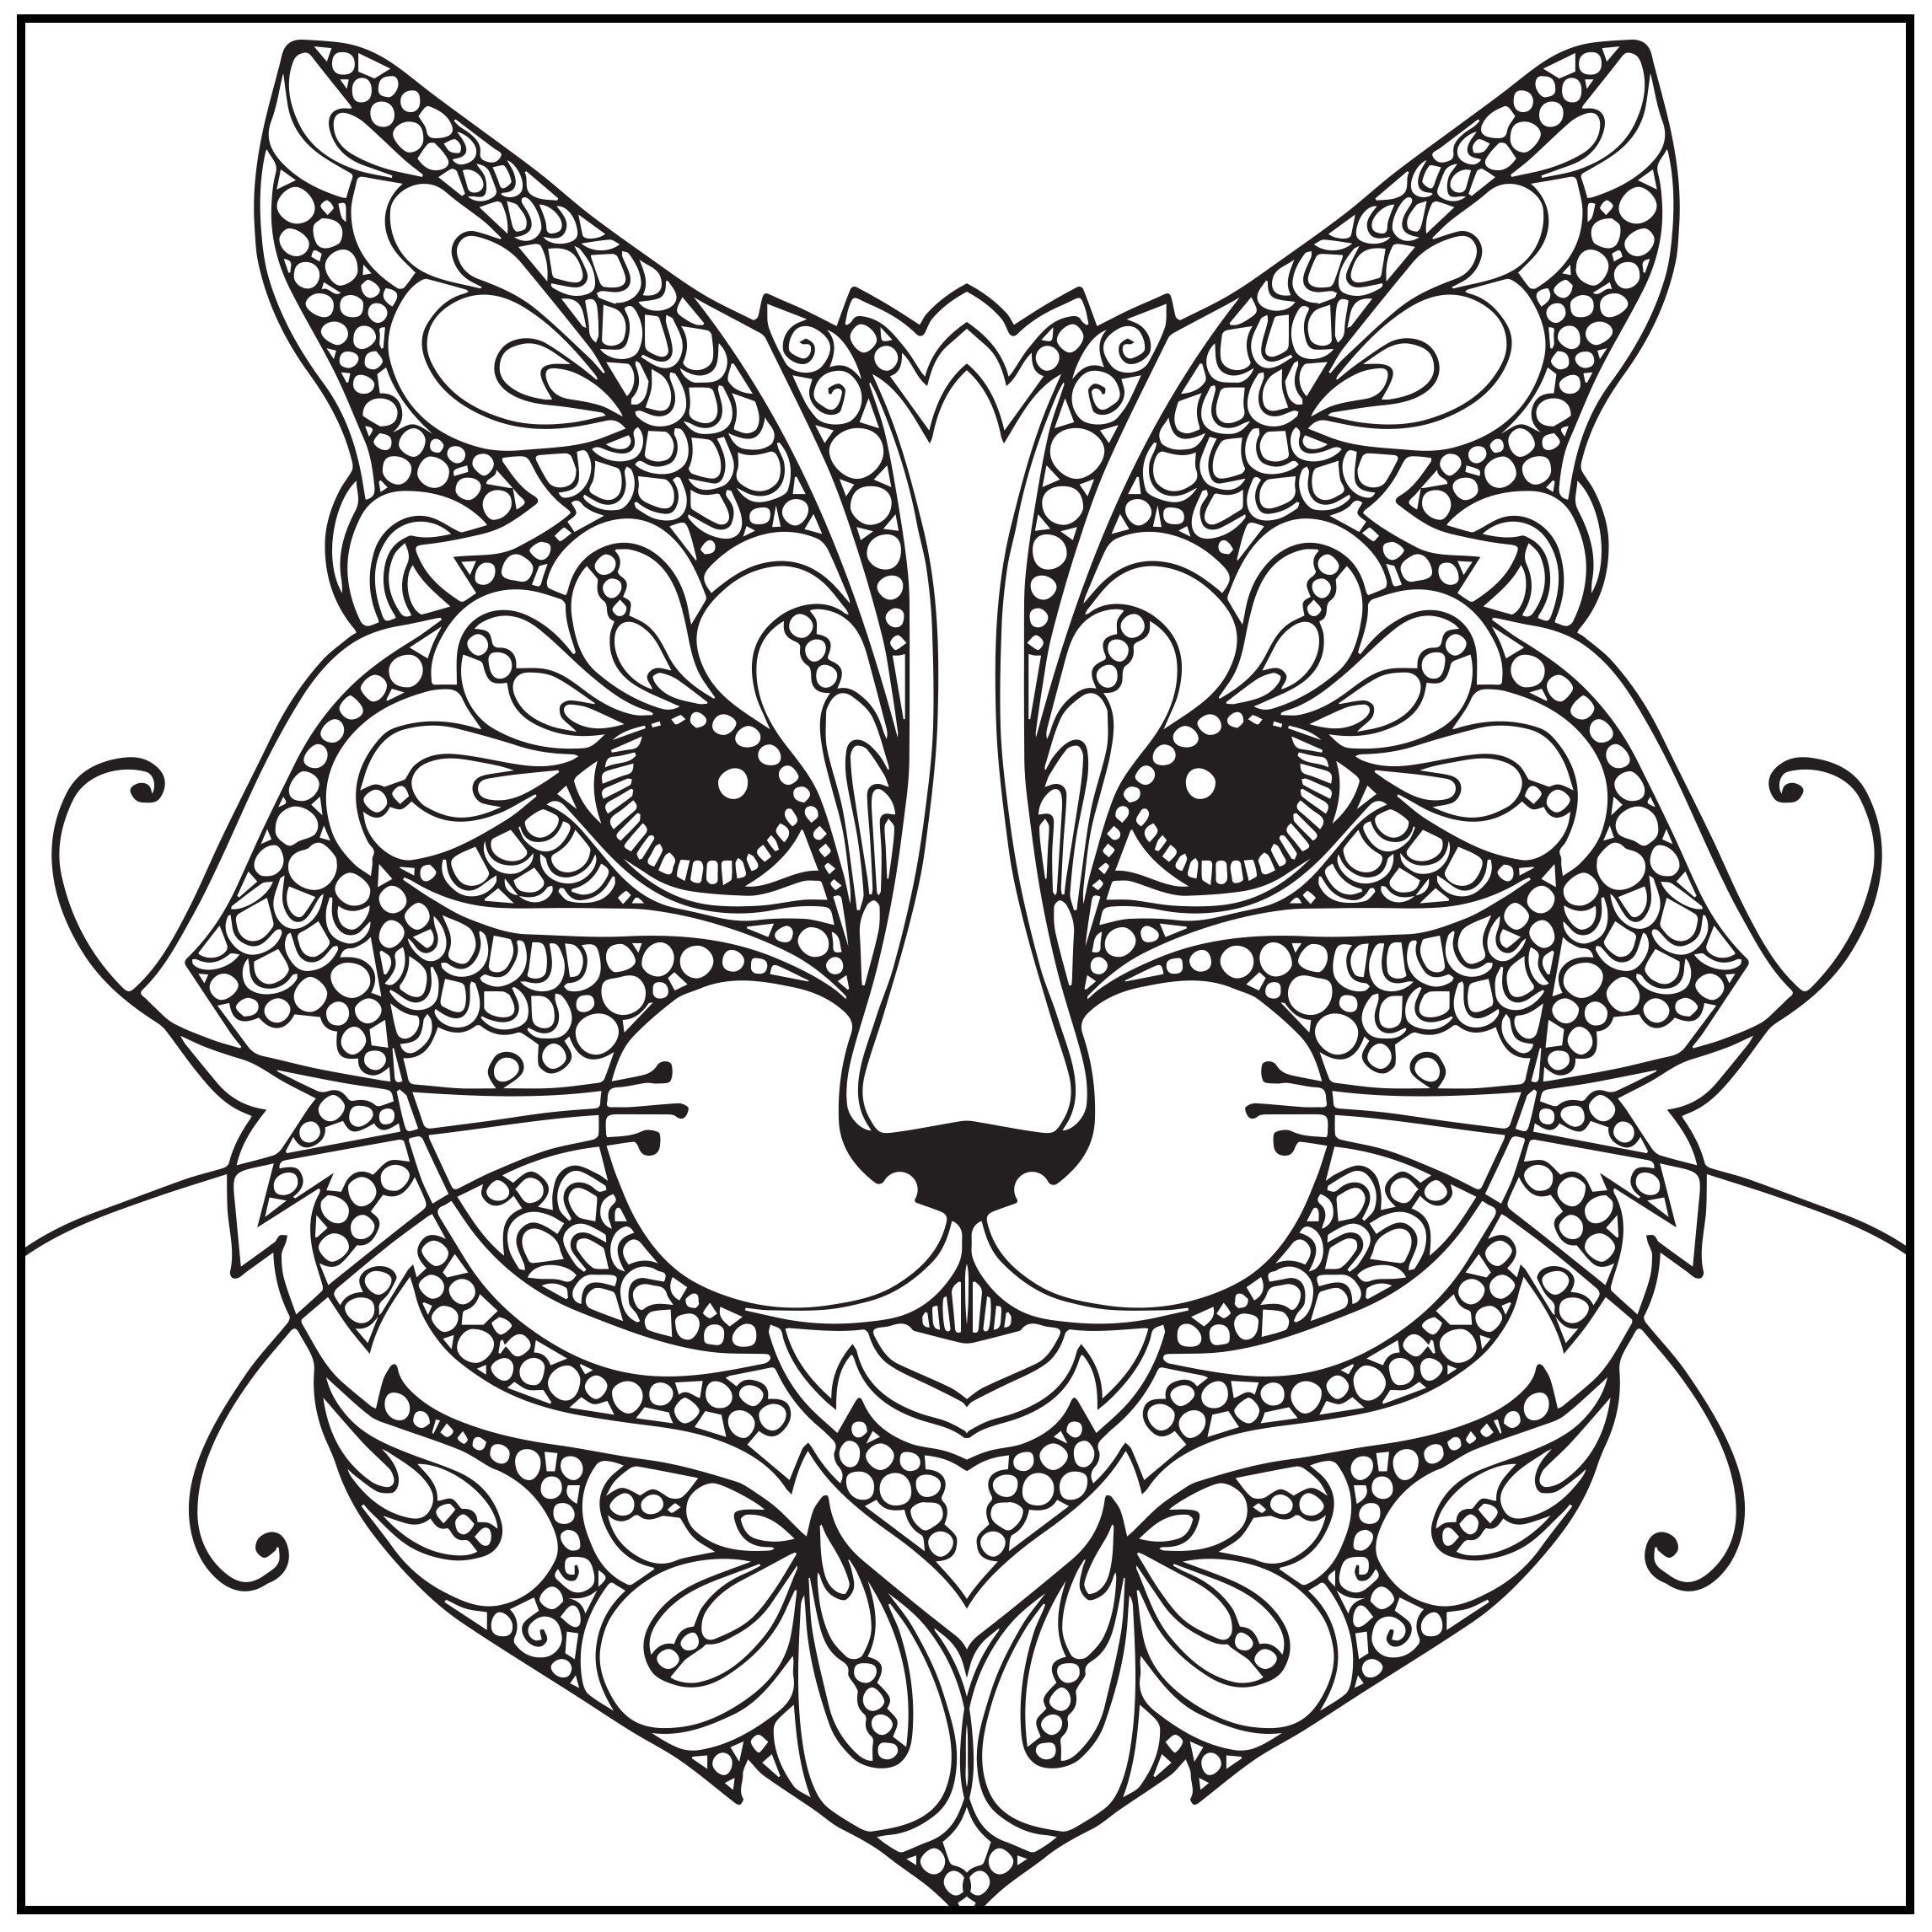 DIRECTLY FROM SITE>> Amazon.com: ADULT COLORING BOOK: Wild About ...